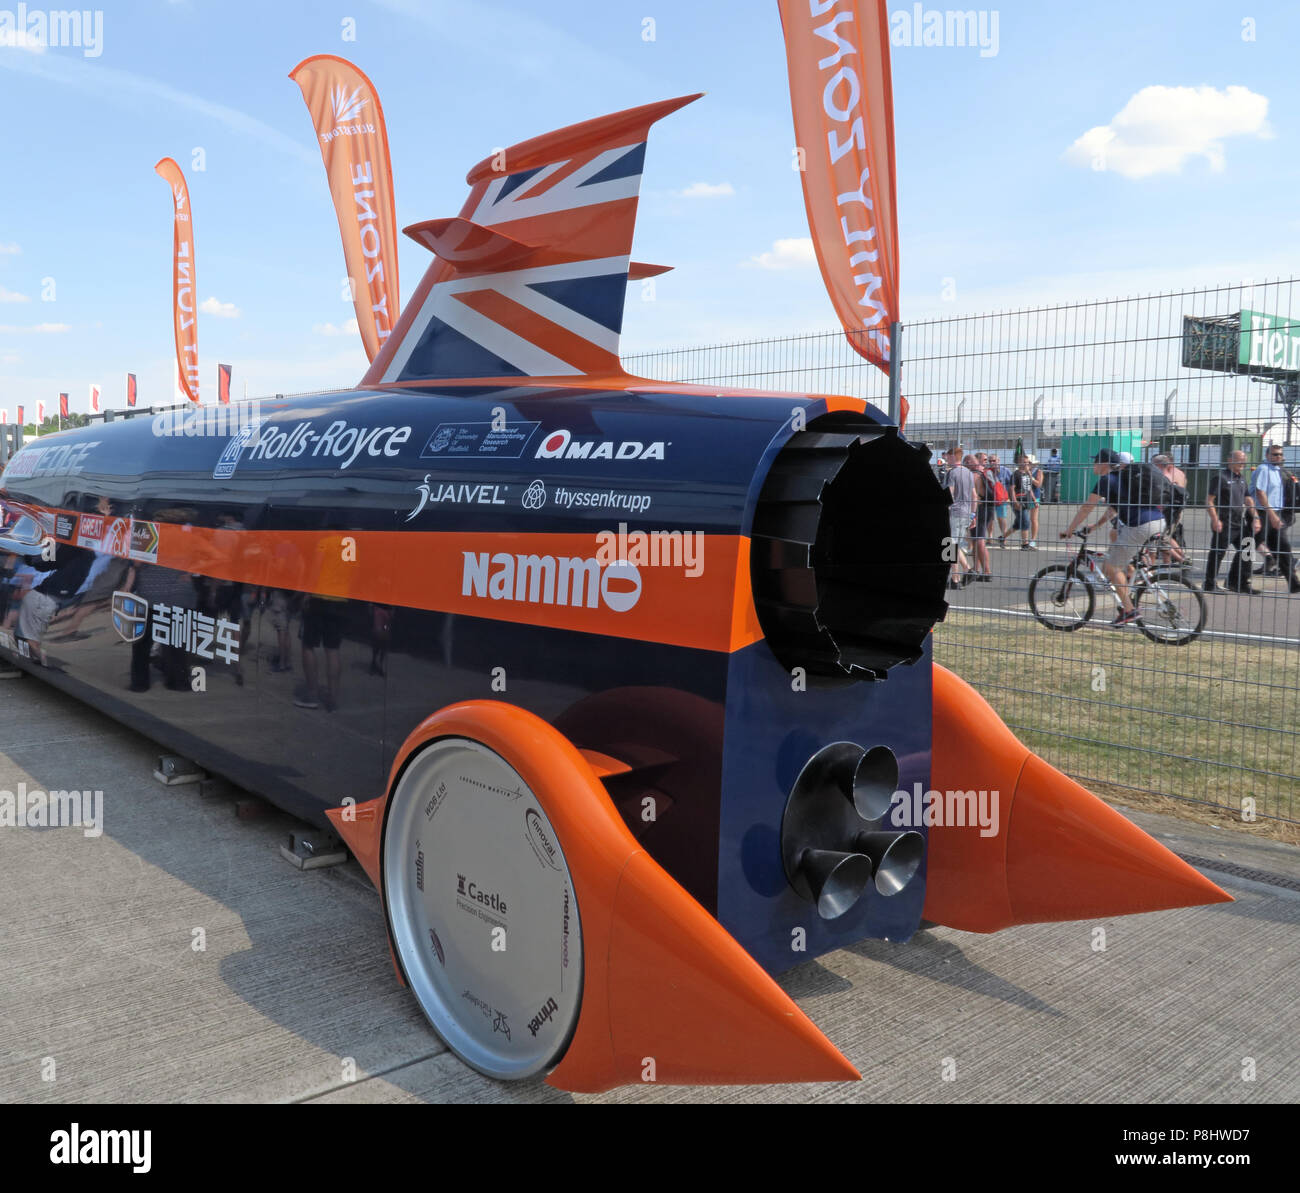 Bloodhound SSC jet car, now LSR, British supersonic land vehicle, at Silverstone racing circuit, UTC, Silverstone Circuit, Towcester ,England,NN12 8TL Stock Photo